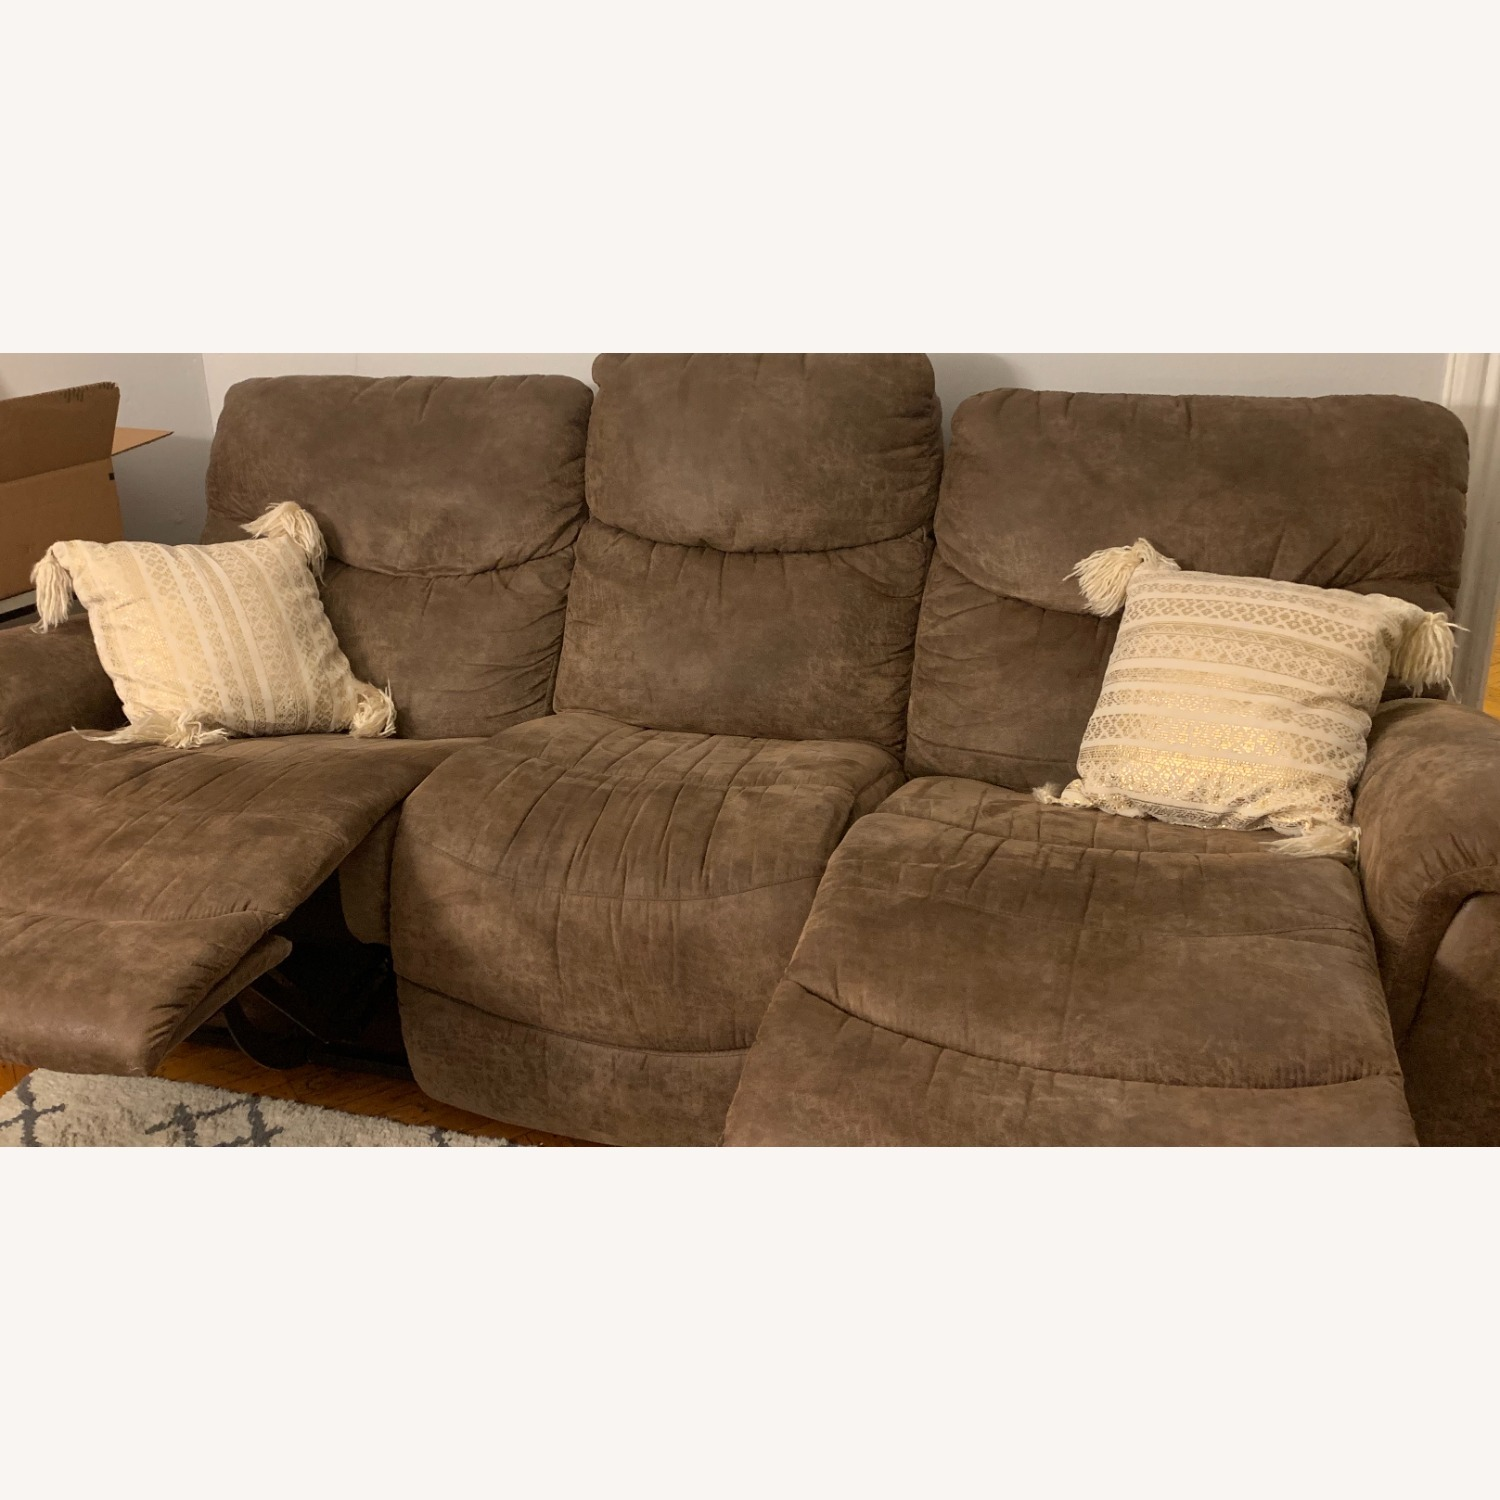 La-Z-Boy Ddual Reclining Couch - brown - image-2